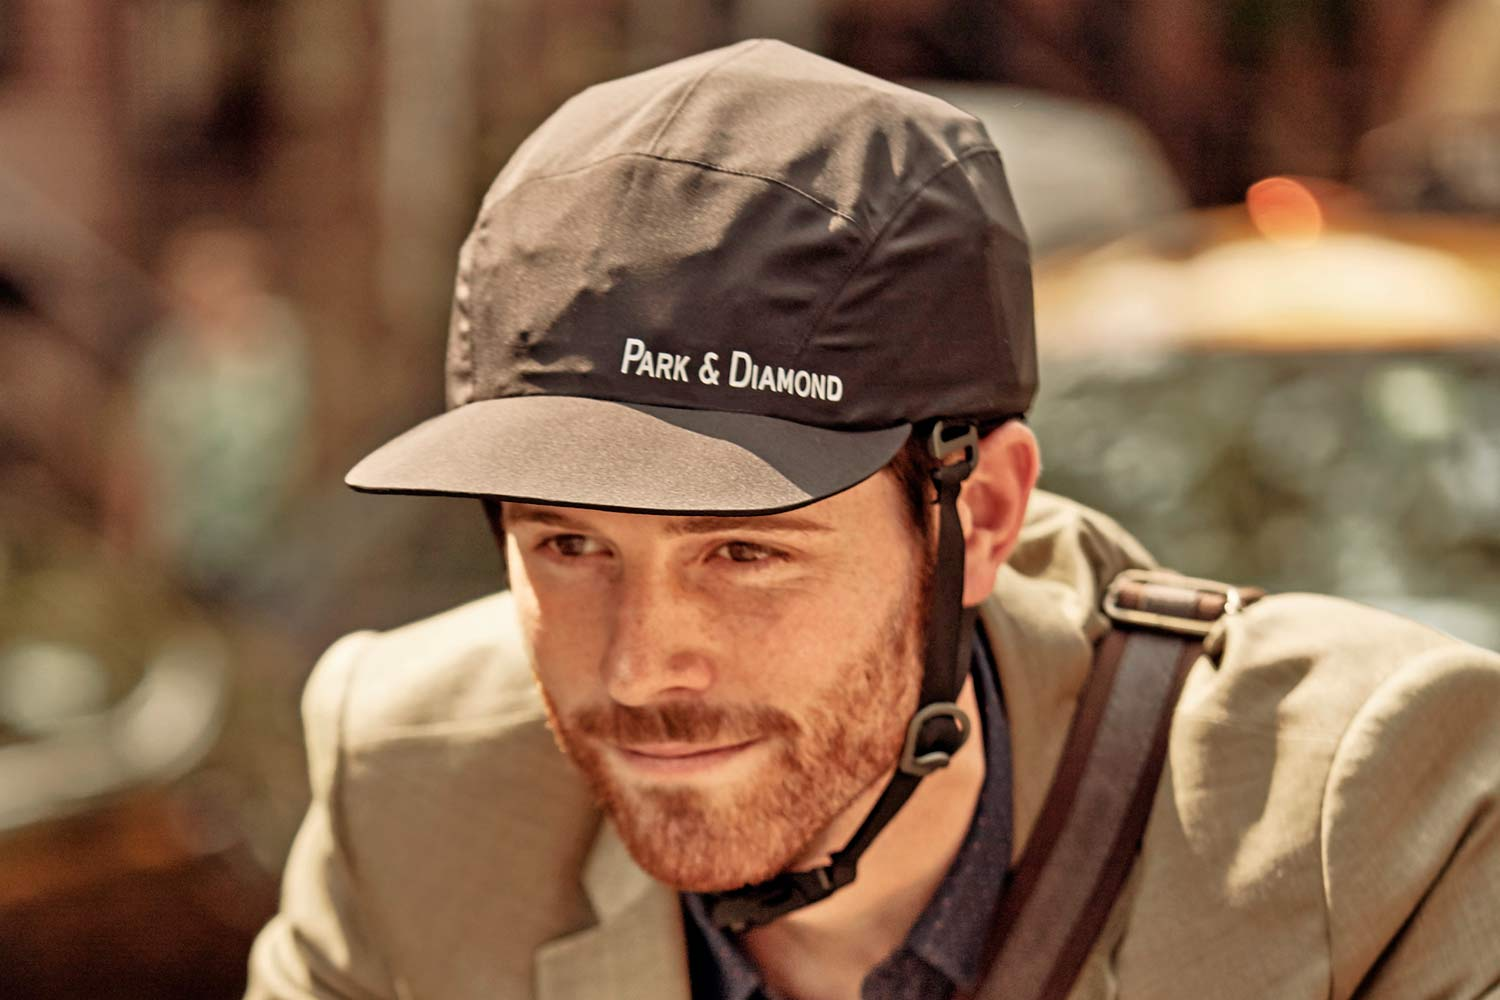 Park and Diamond bicycle helmet collapsible folding baseball cap style urban commuter cycling helmet